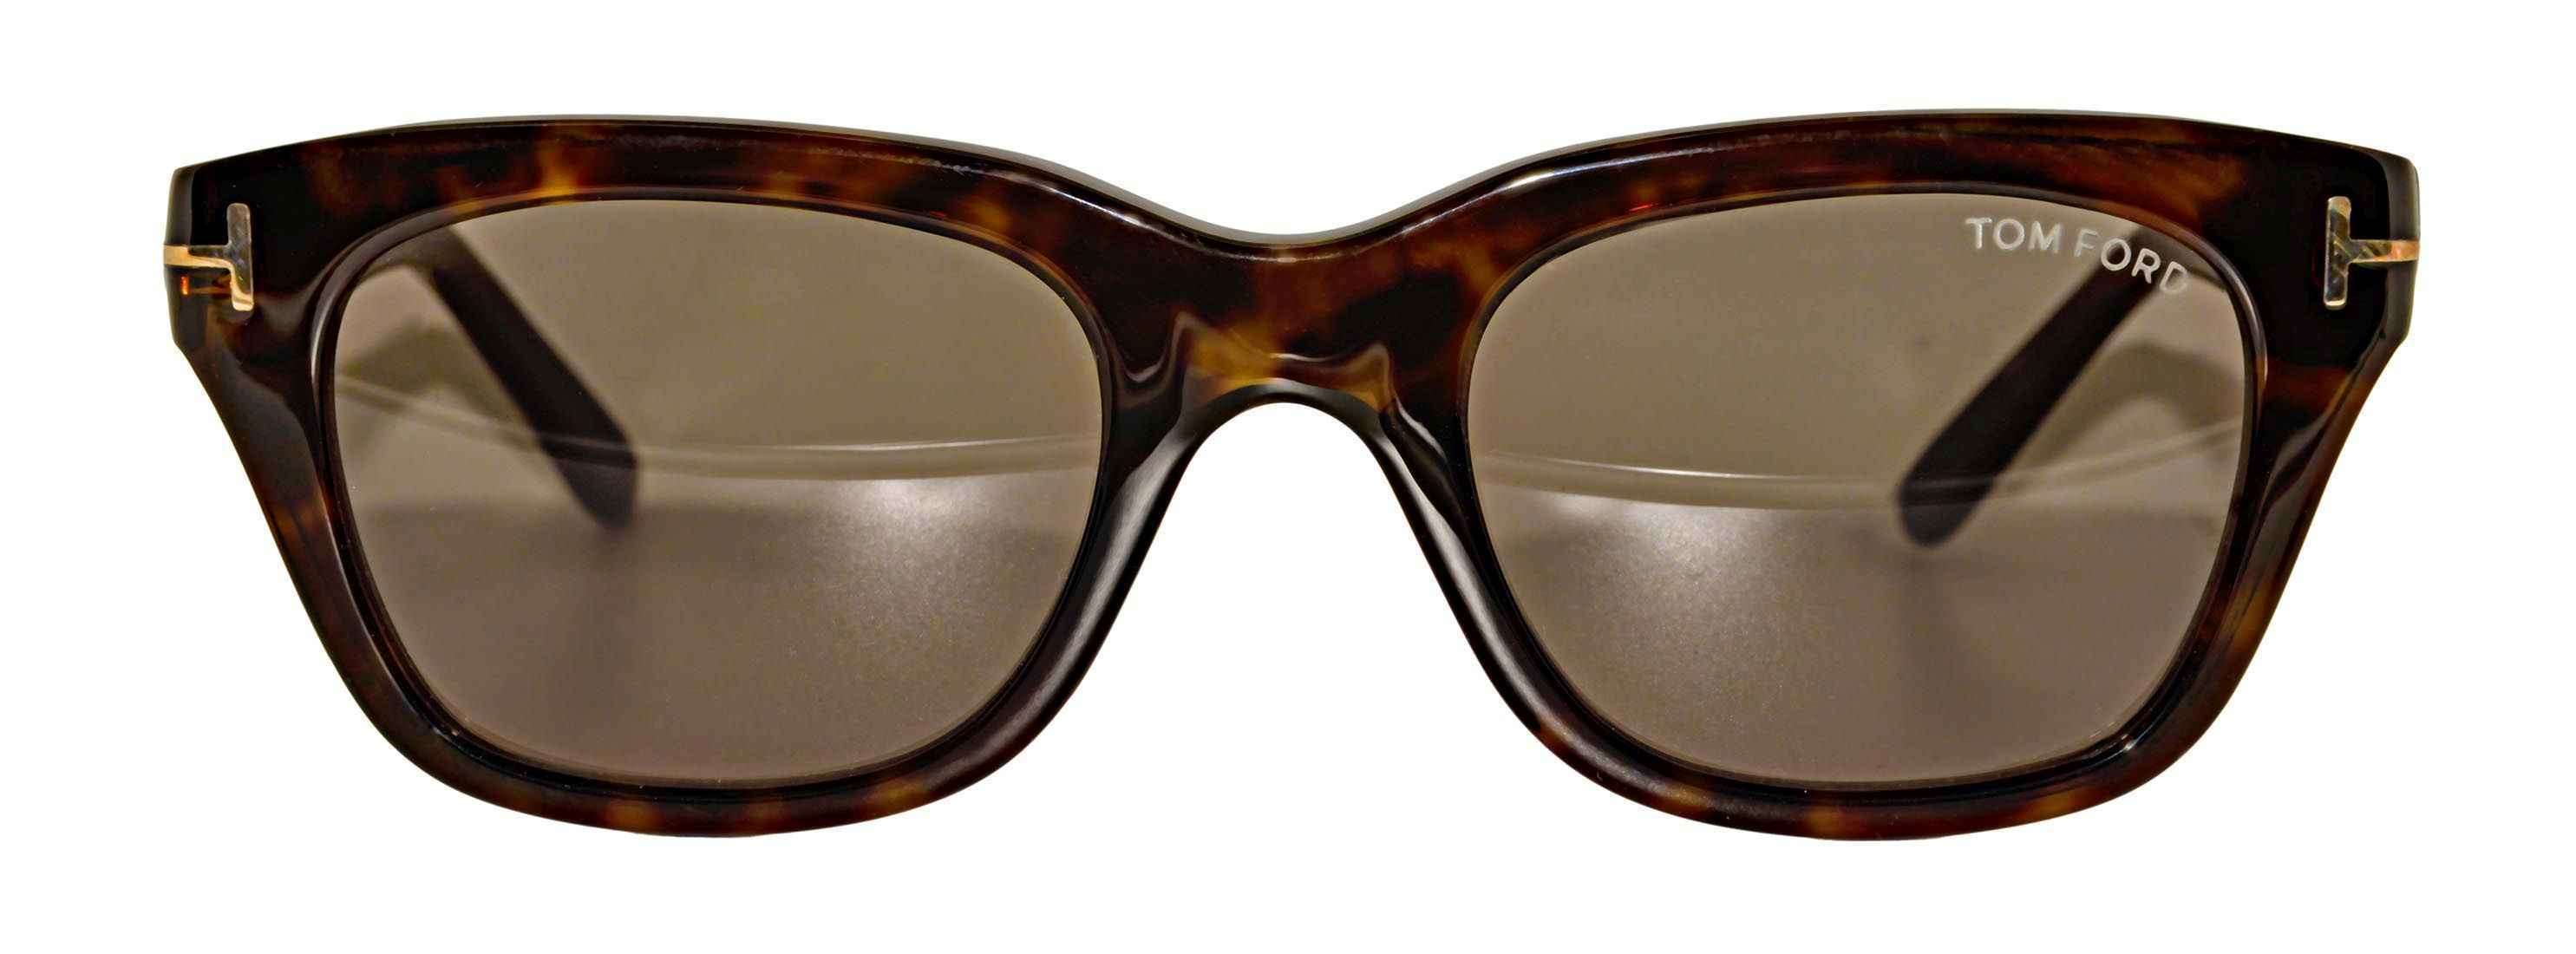 Tom Ford Sunglasses 237 52n 1 2970x1100